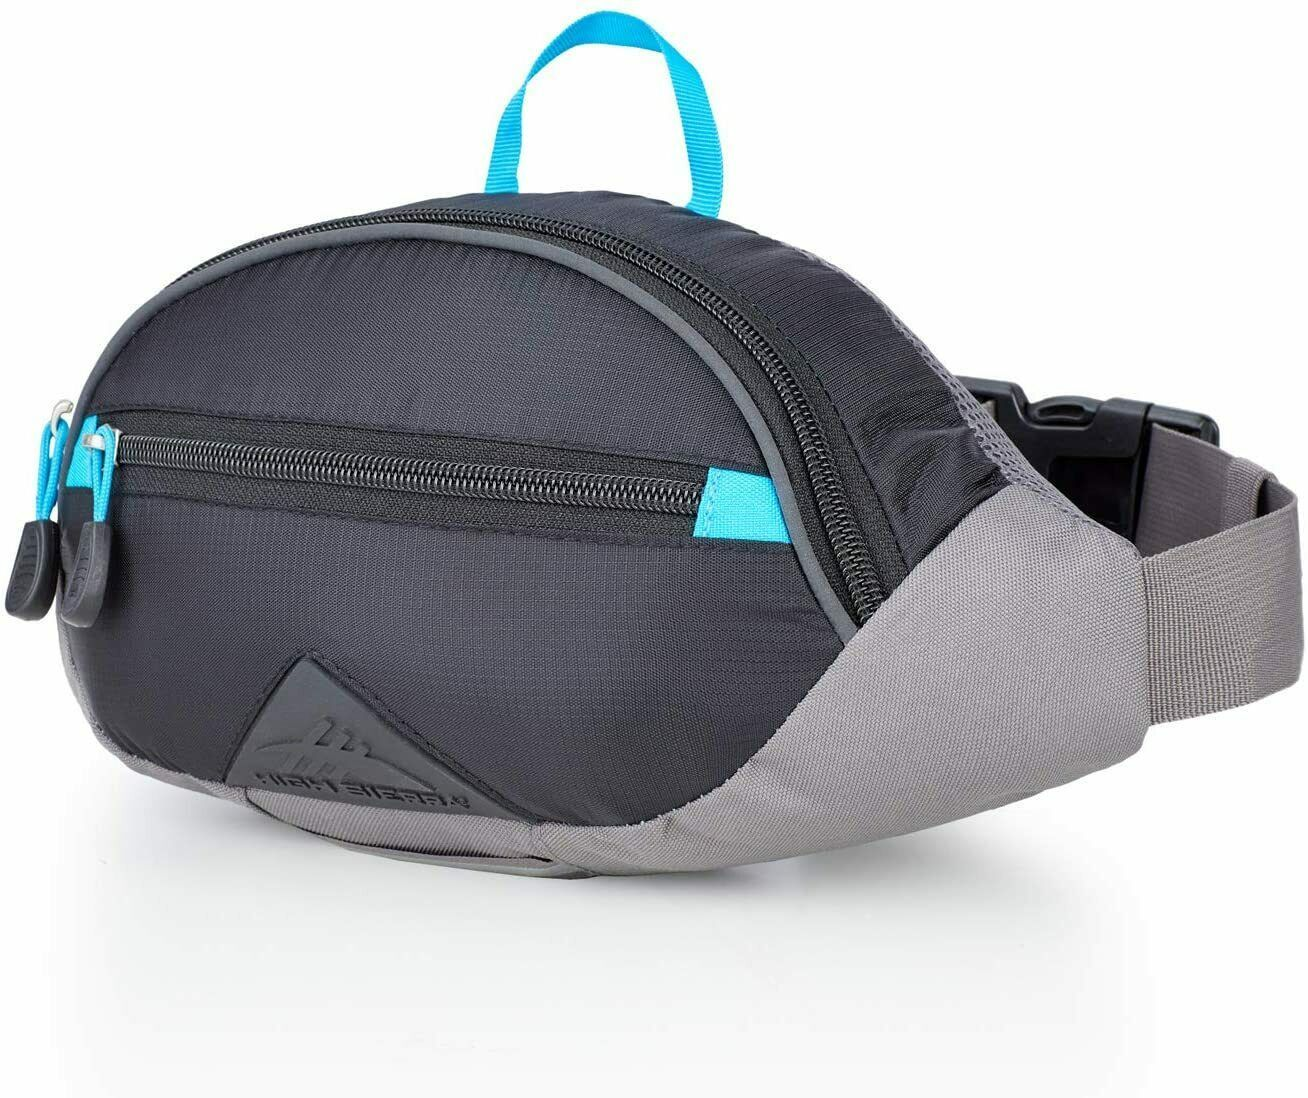 High Sierra HydraHike Waist Pack, Black/Slate/Pool, 1.5L 122661-6853 - $15.99